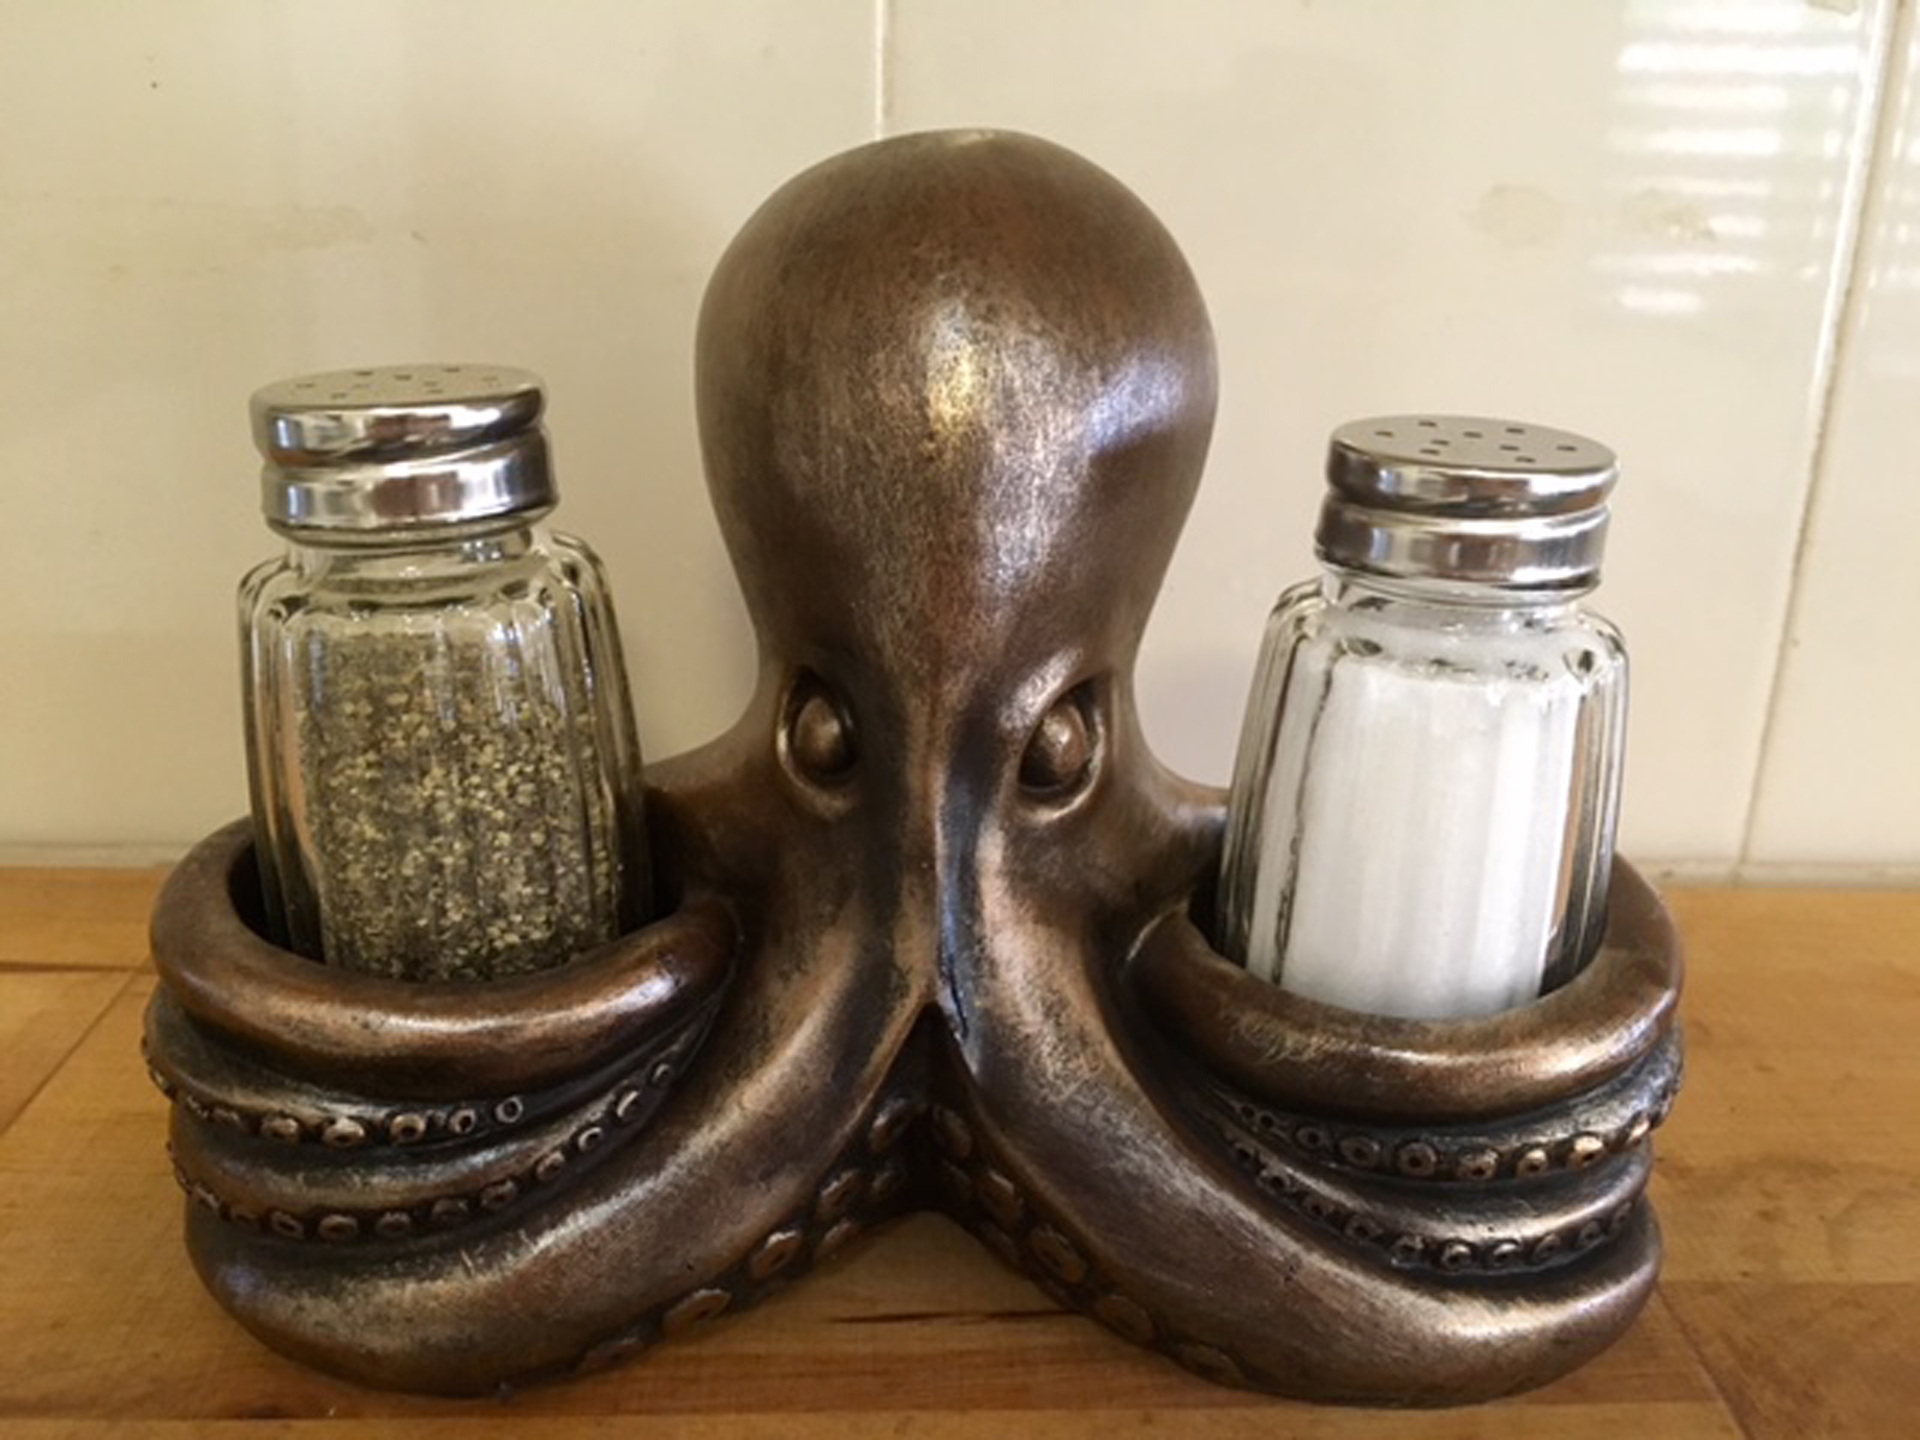 Salt and pepper?